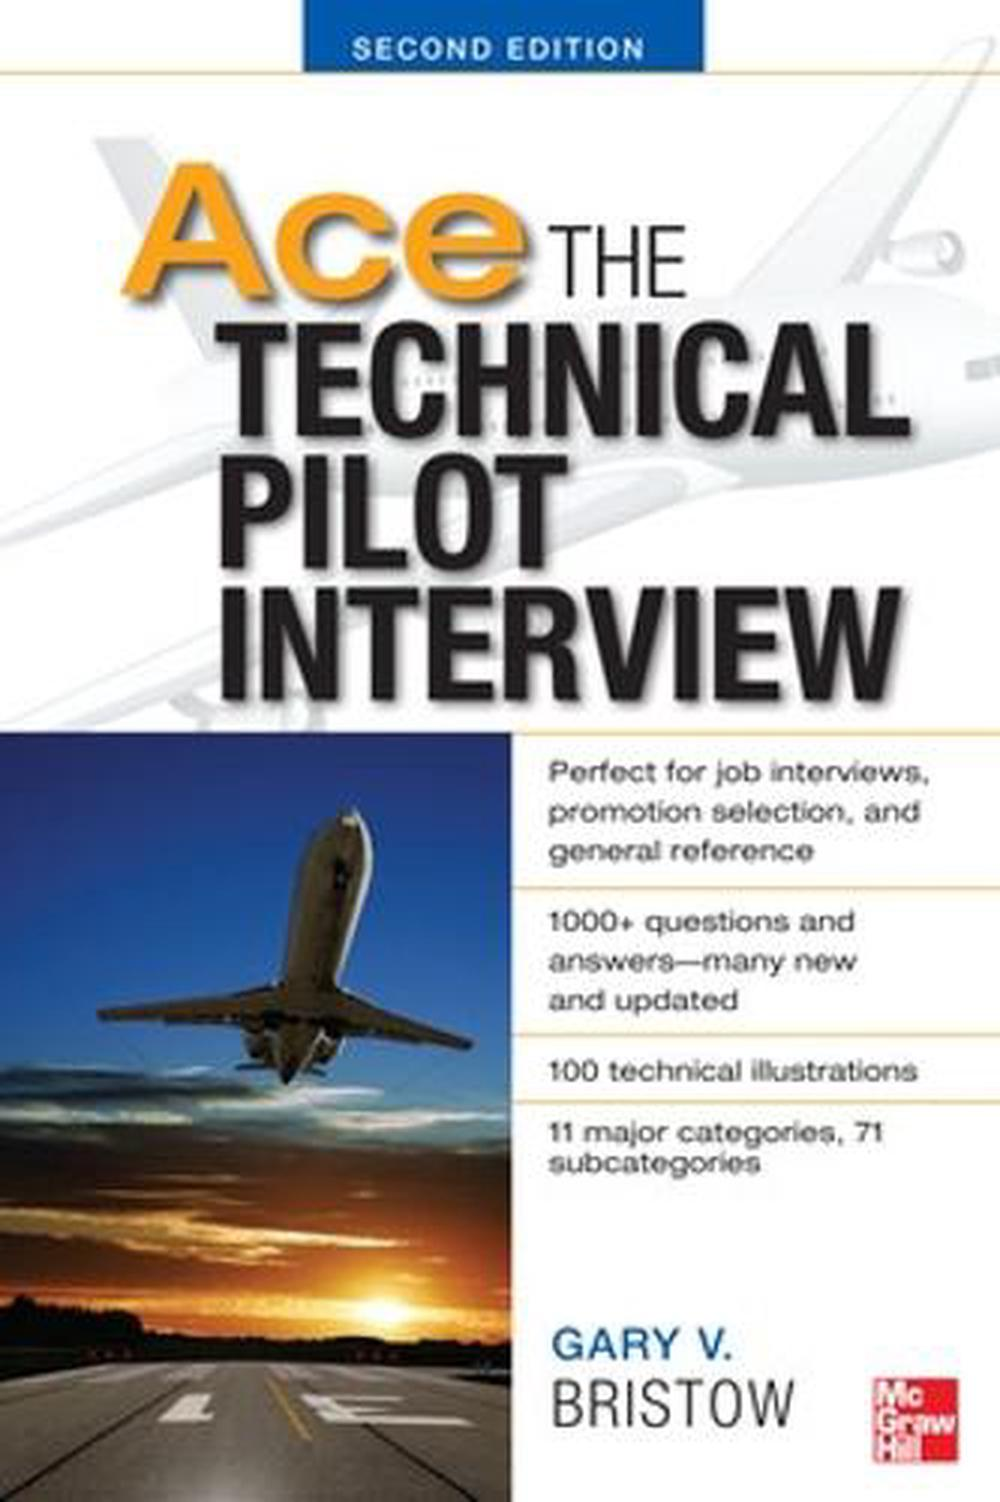 c439ab66a Ace the Technical Pilot Interview by Gary V. Bristow, Paperback,  9780071793865 | Buy online at The Nile